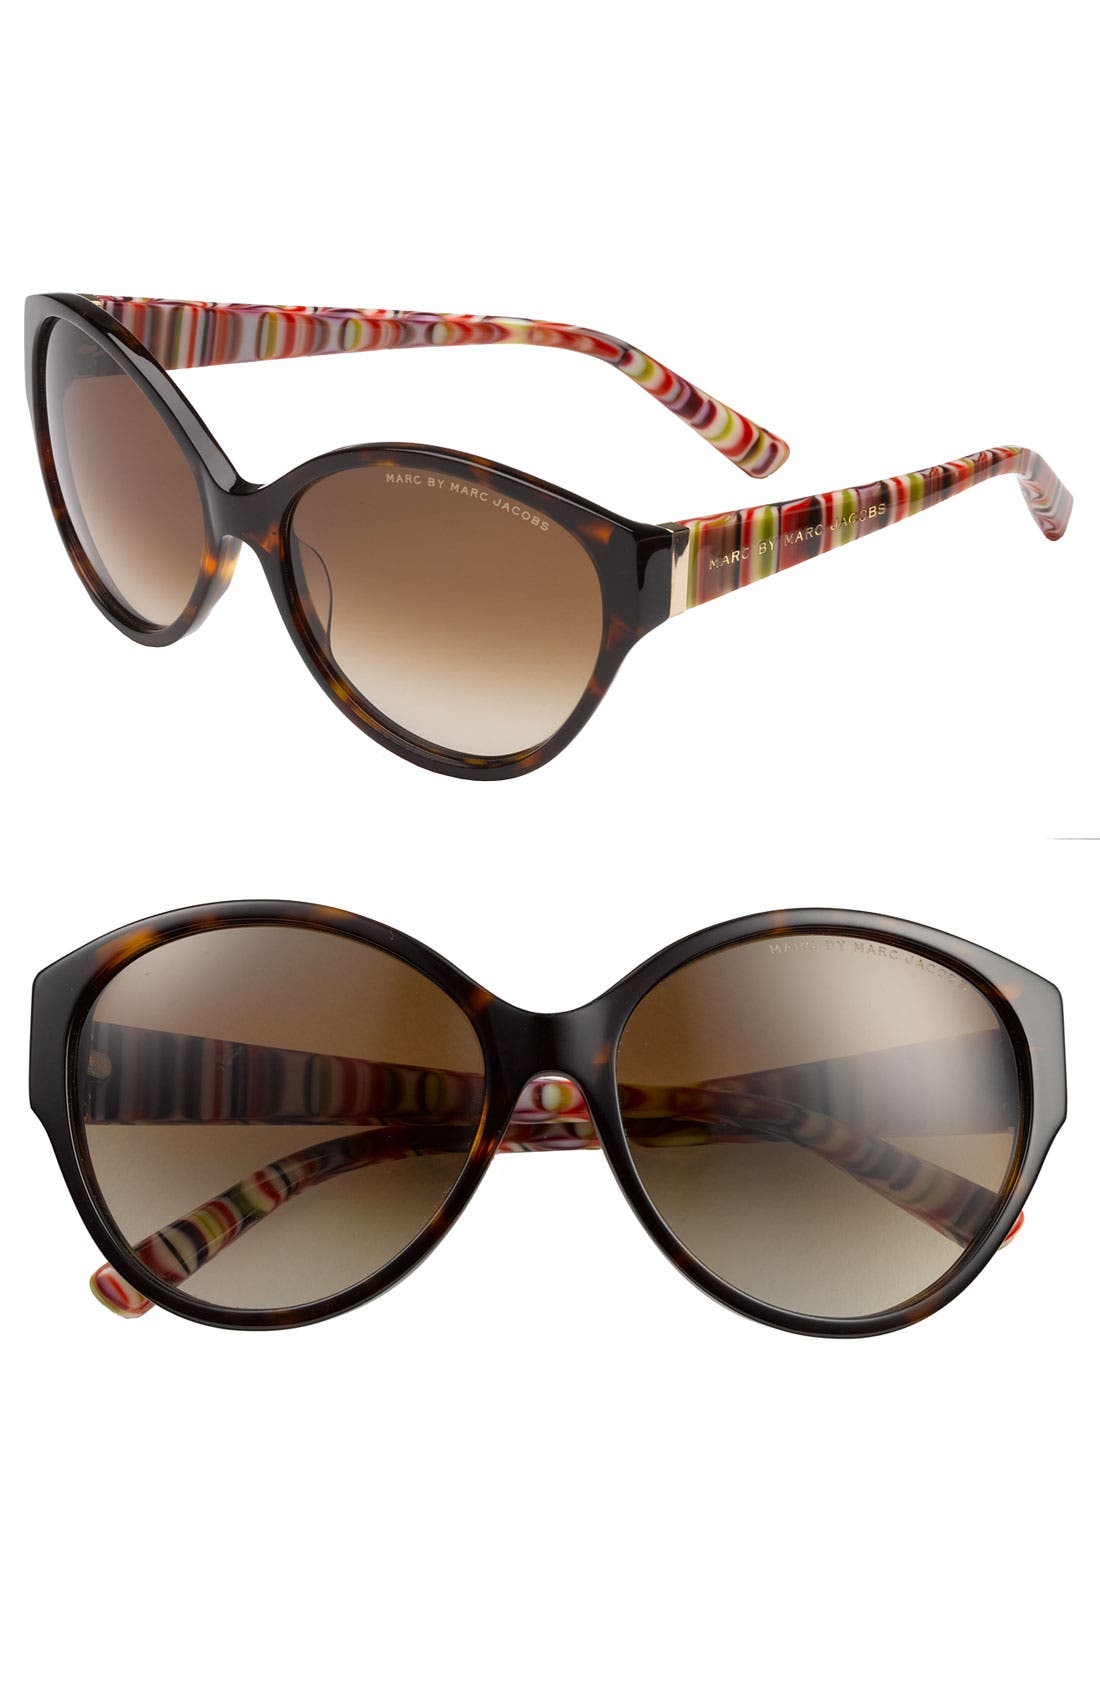 Alternate Image 1 Selected - MARC BY MARC JACOBS Stripe Cat's Eye Sunglasses (Nordstrom Exclusive)